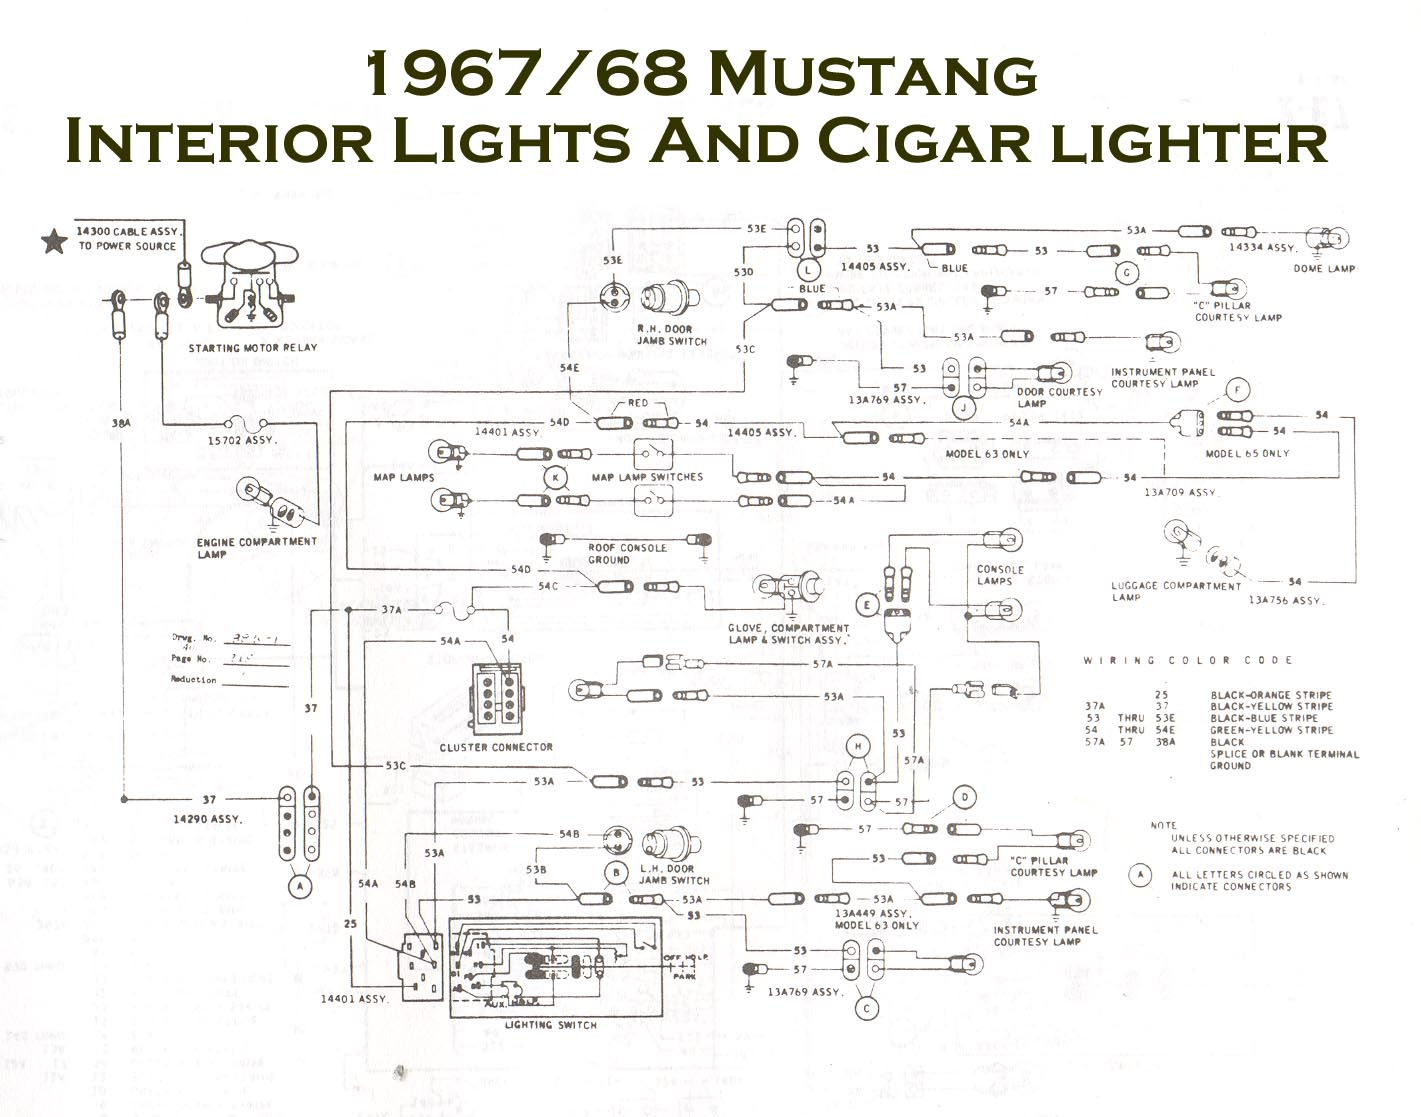 1967 68_console_wiring_diagram vintage mustang wiring diagrams 2004 volvo s40 radio wiring diagram at sewacar.co